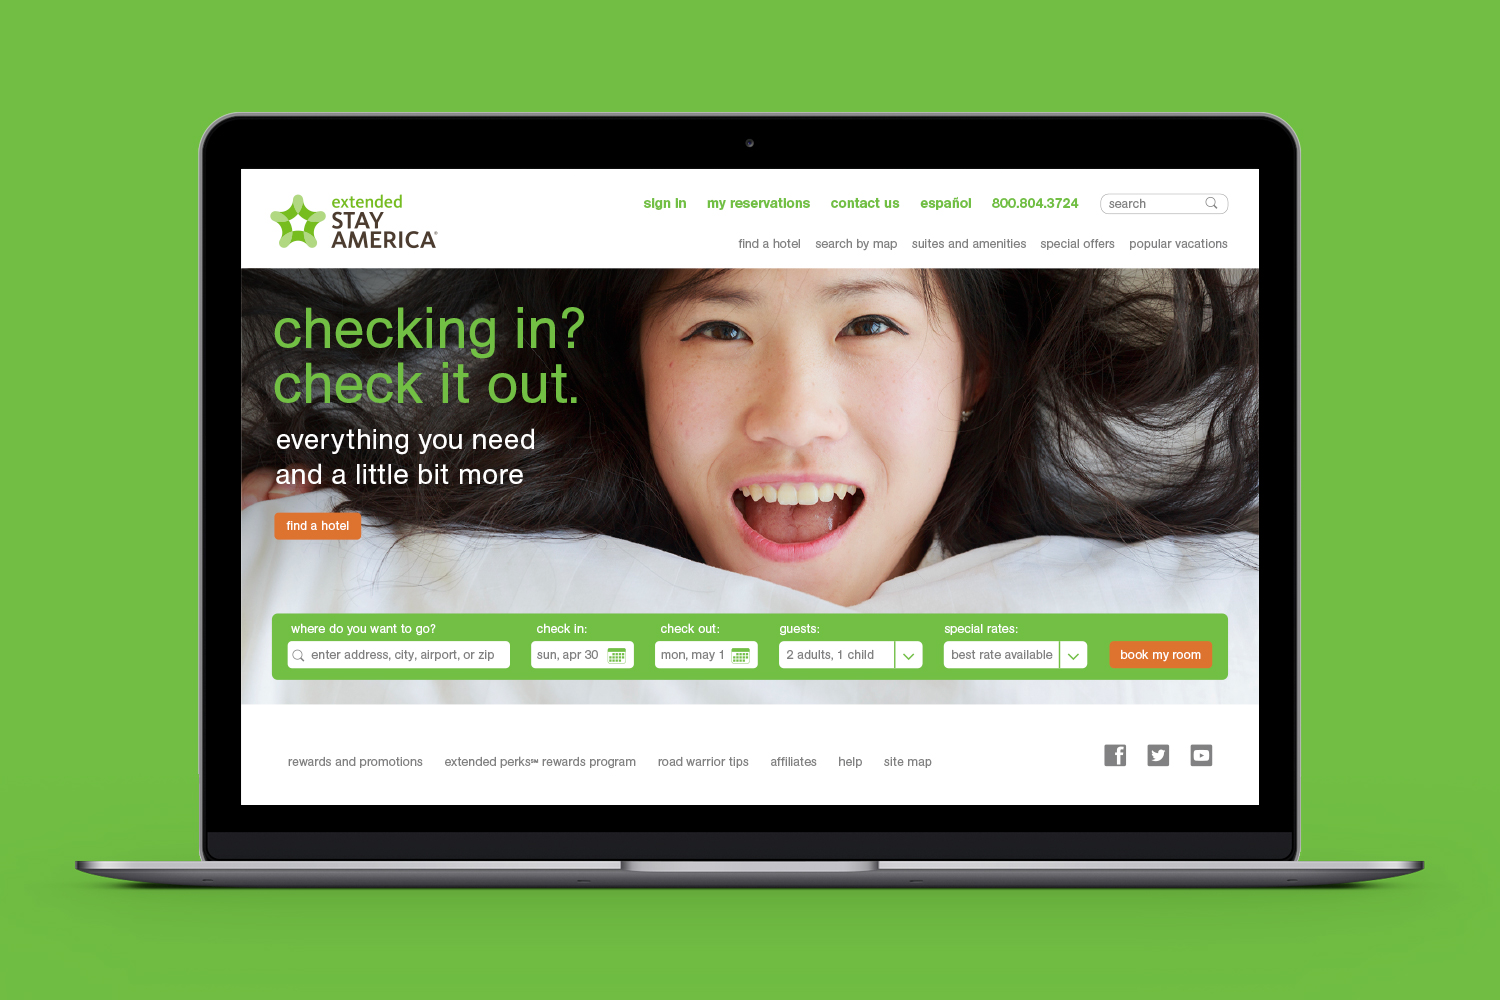 Extended Stay America website, homepage